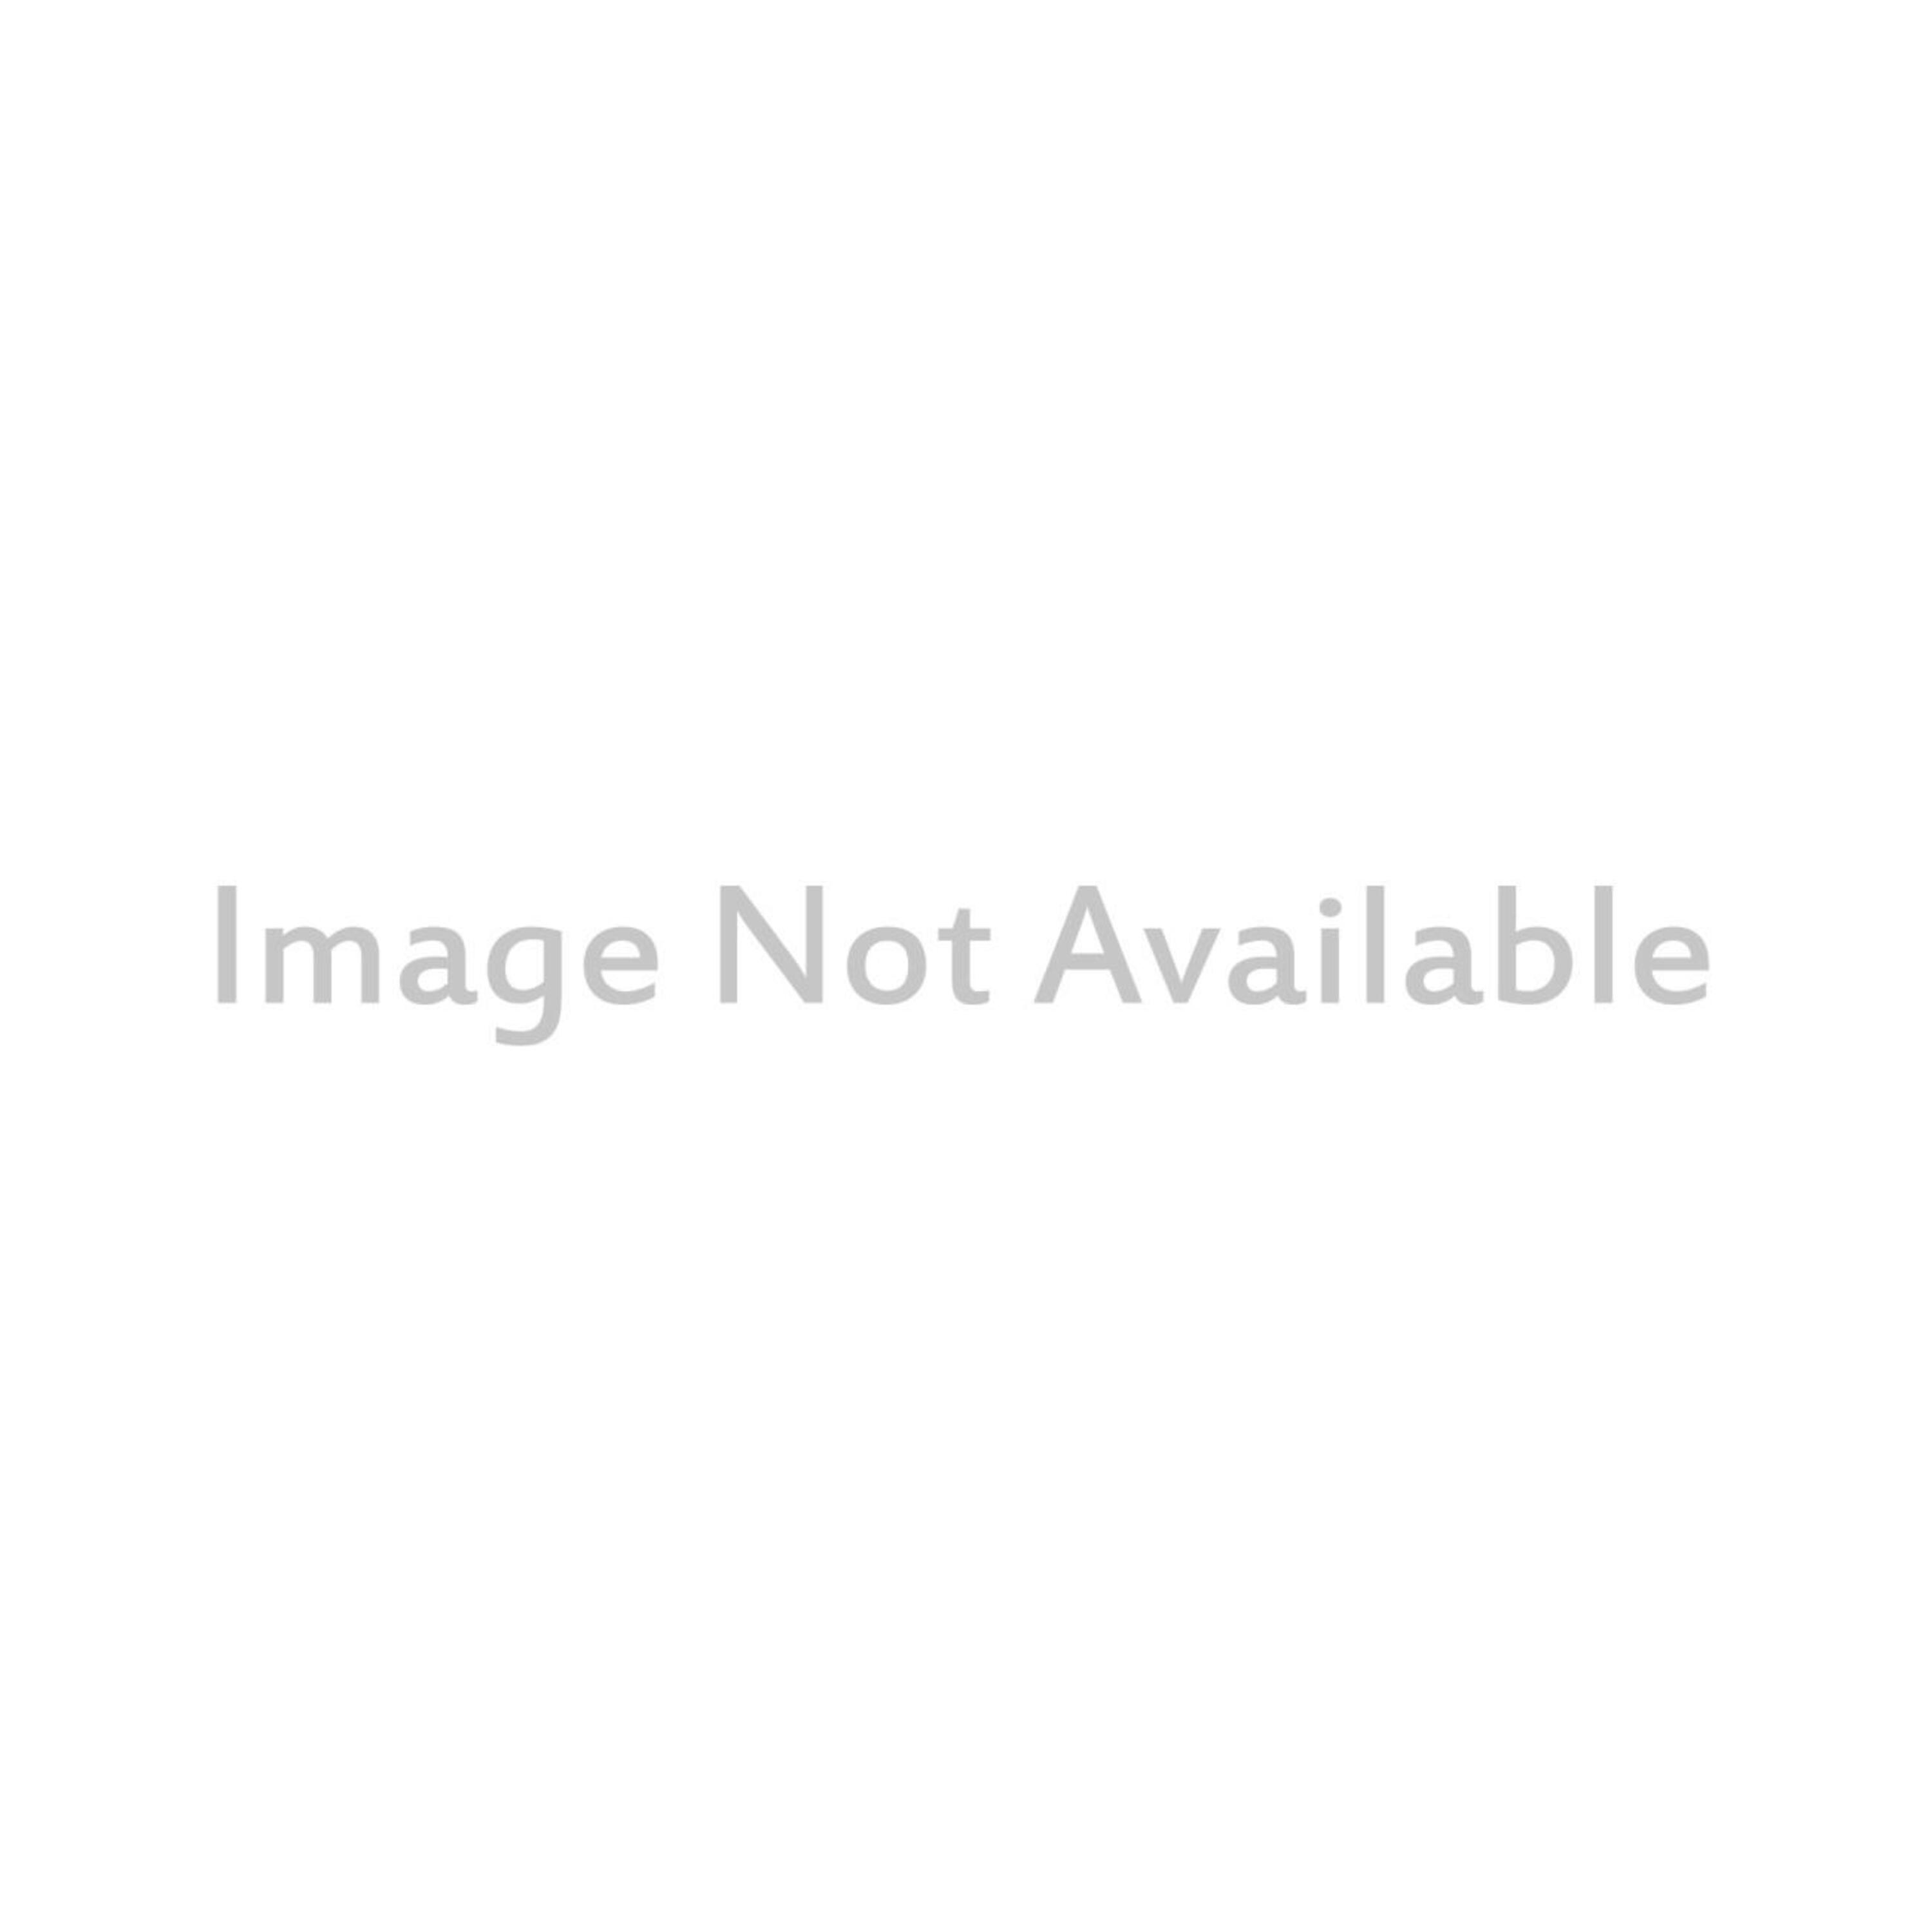 Lorell padded seat folding chairs fabric beige seat beige back steel powder coated frame 29 5 width x 2 depth x 23 3 height